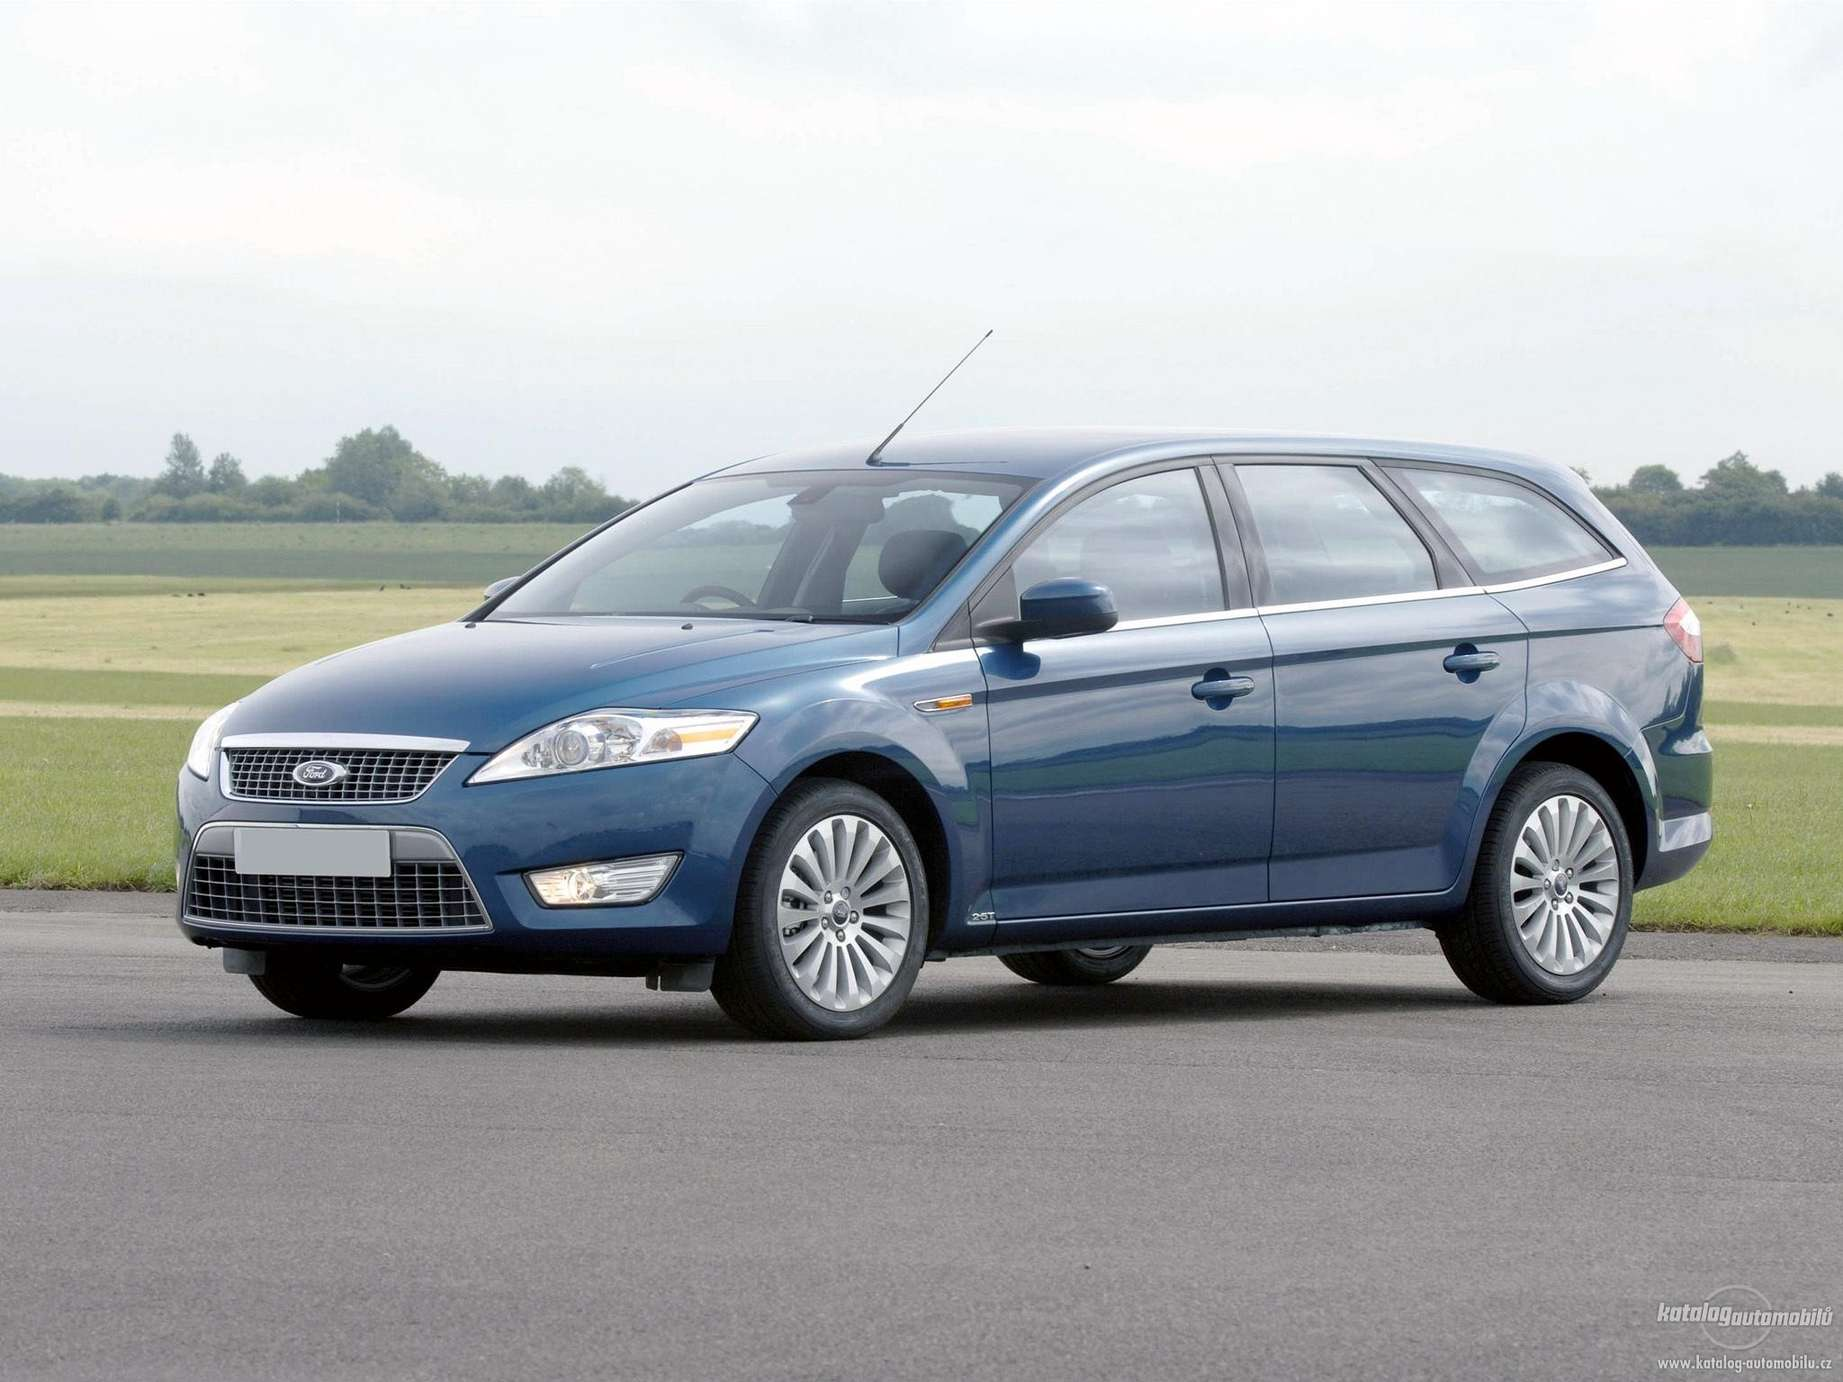 Ford Mondeo TDCi #7148653